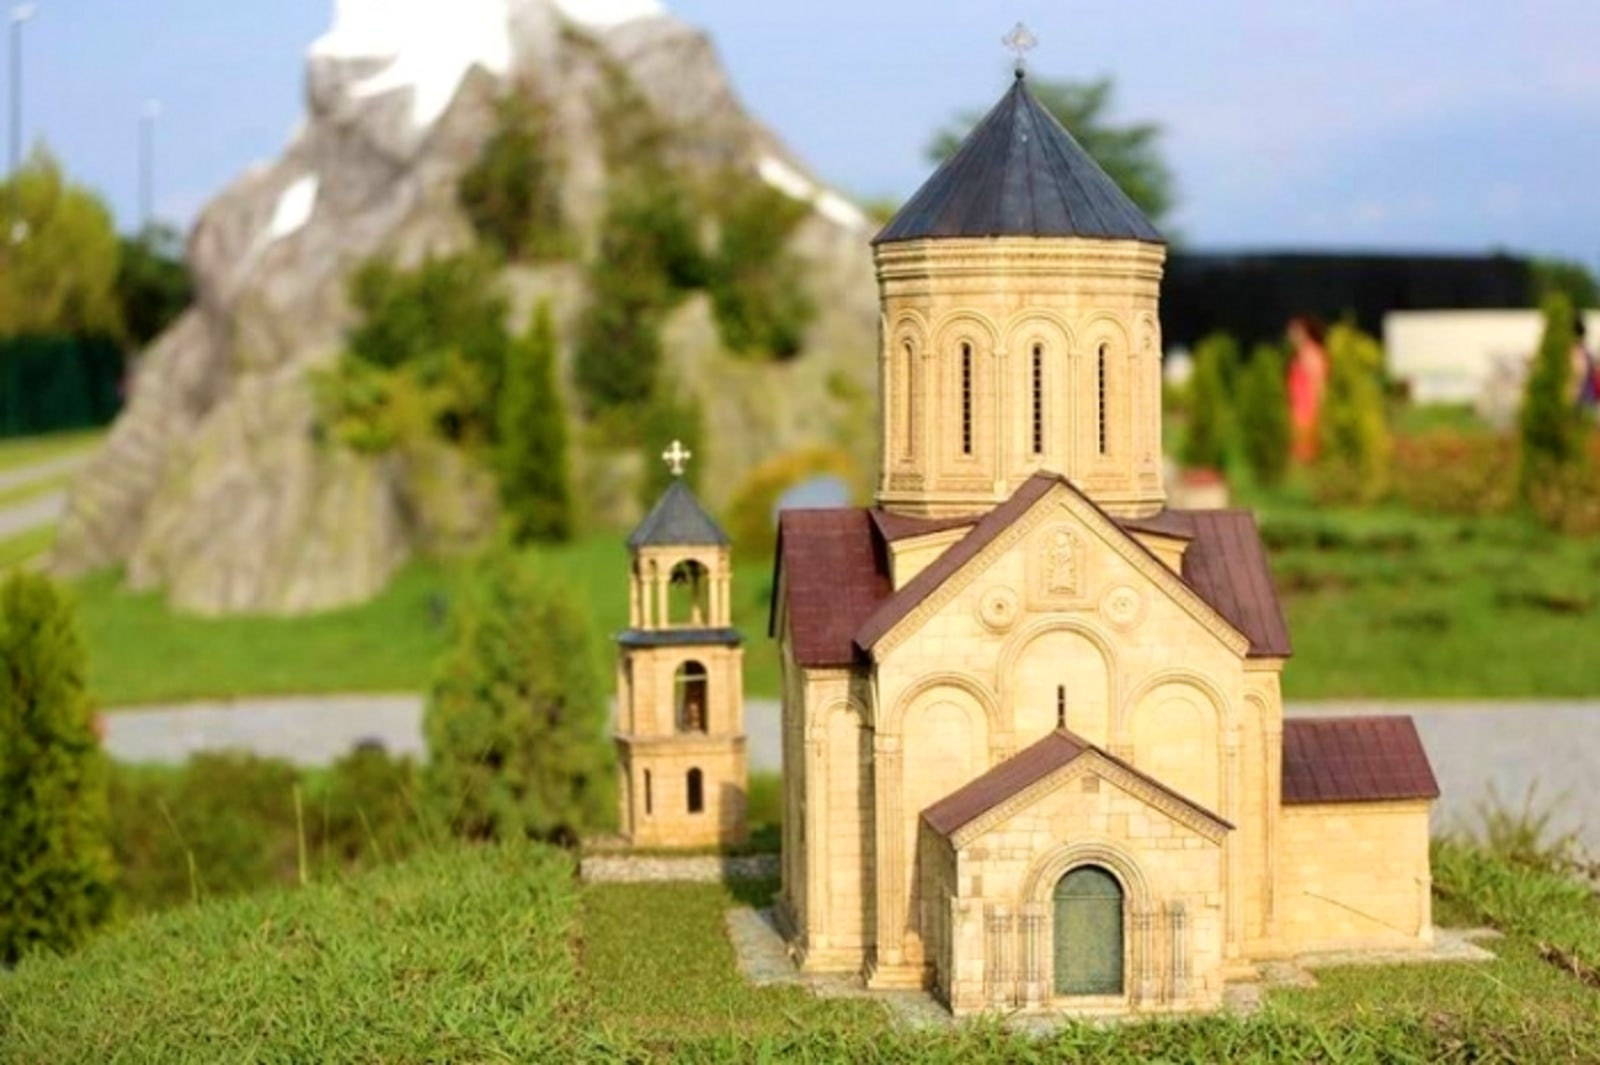 Cover Picture © Credits to georgianjournal/ParkofMiniatures